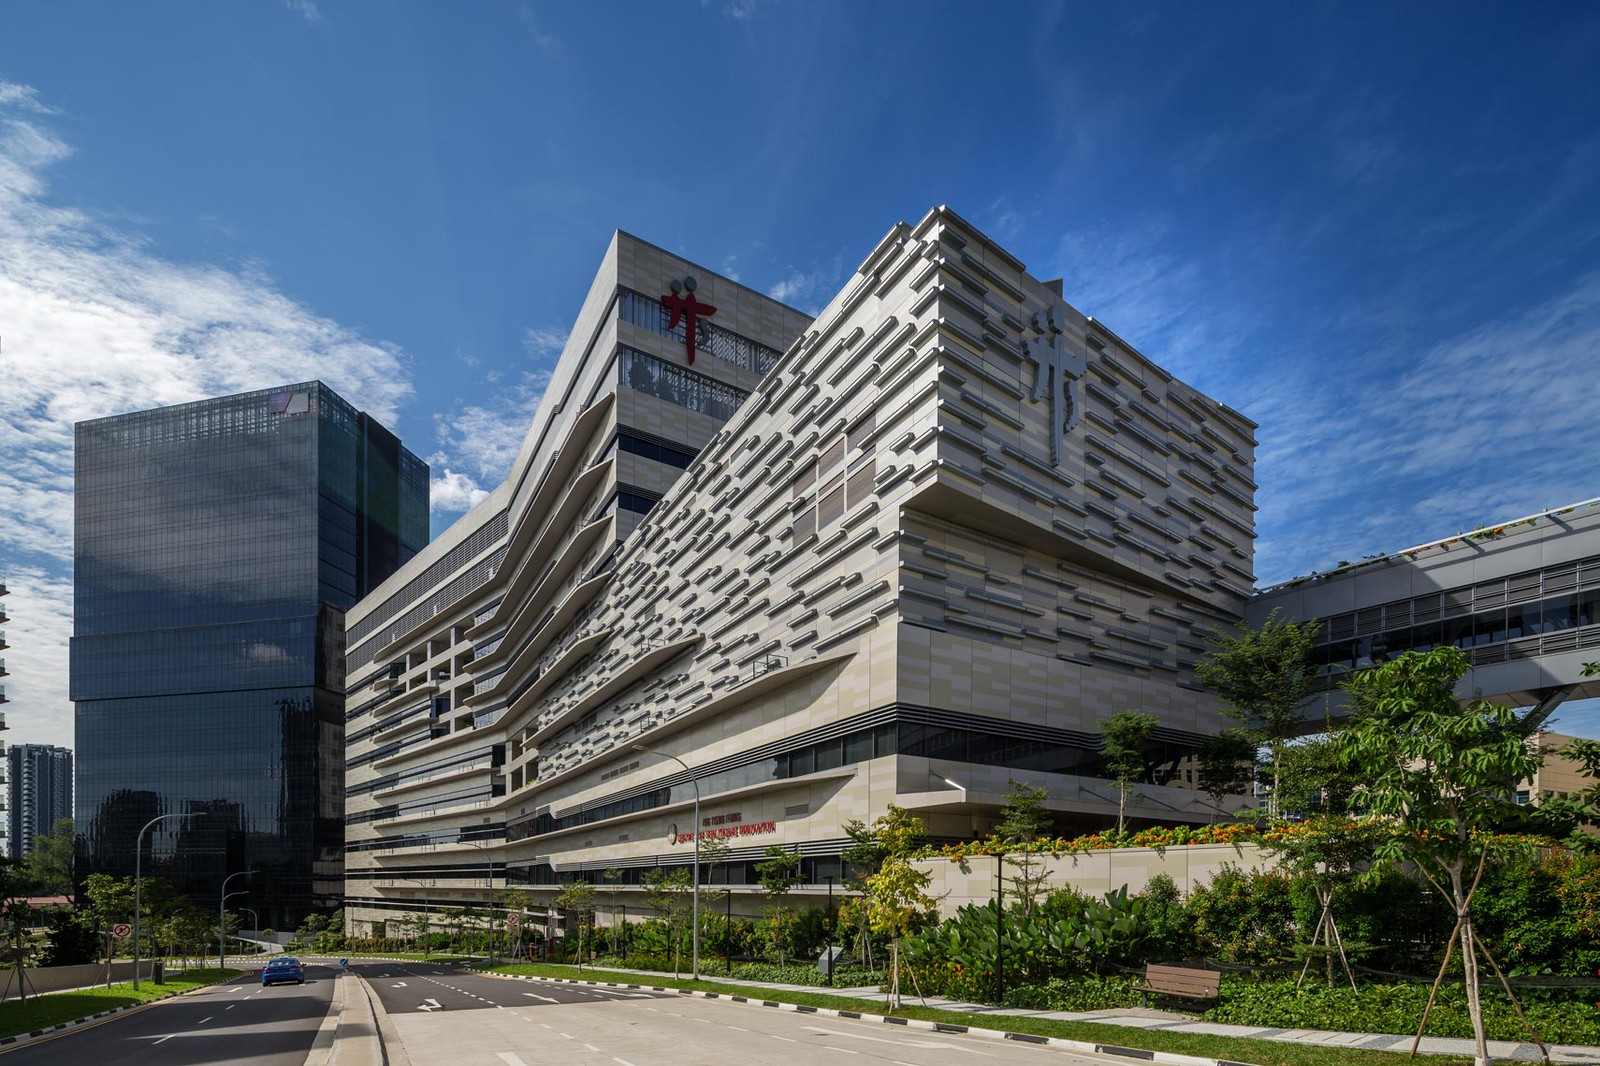 NATIONAL CENTRE FOR INFECTIOUS DISEASES & CENTRE FOR HEALTHCARE INNOVATION (NCID)